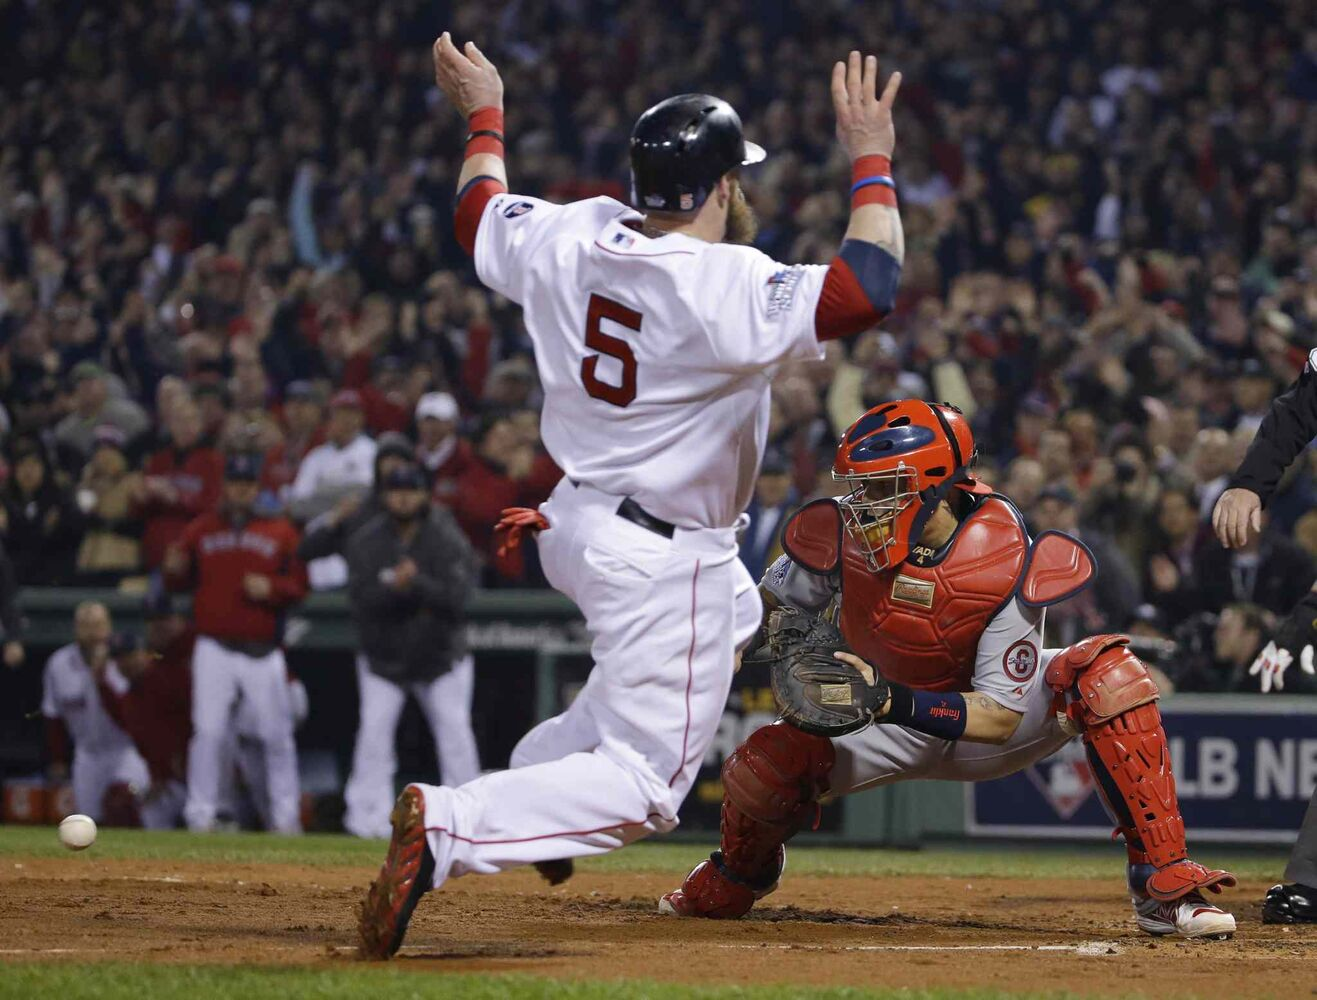 St. Louis Cardinals catcher Yadier Molina waits for the throw as Boston Red Sox's Jonny Gomes heads for home plate. (Matt Slocum / The Associated Press)